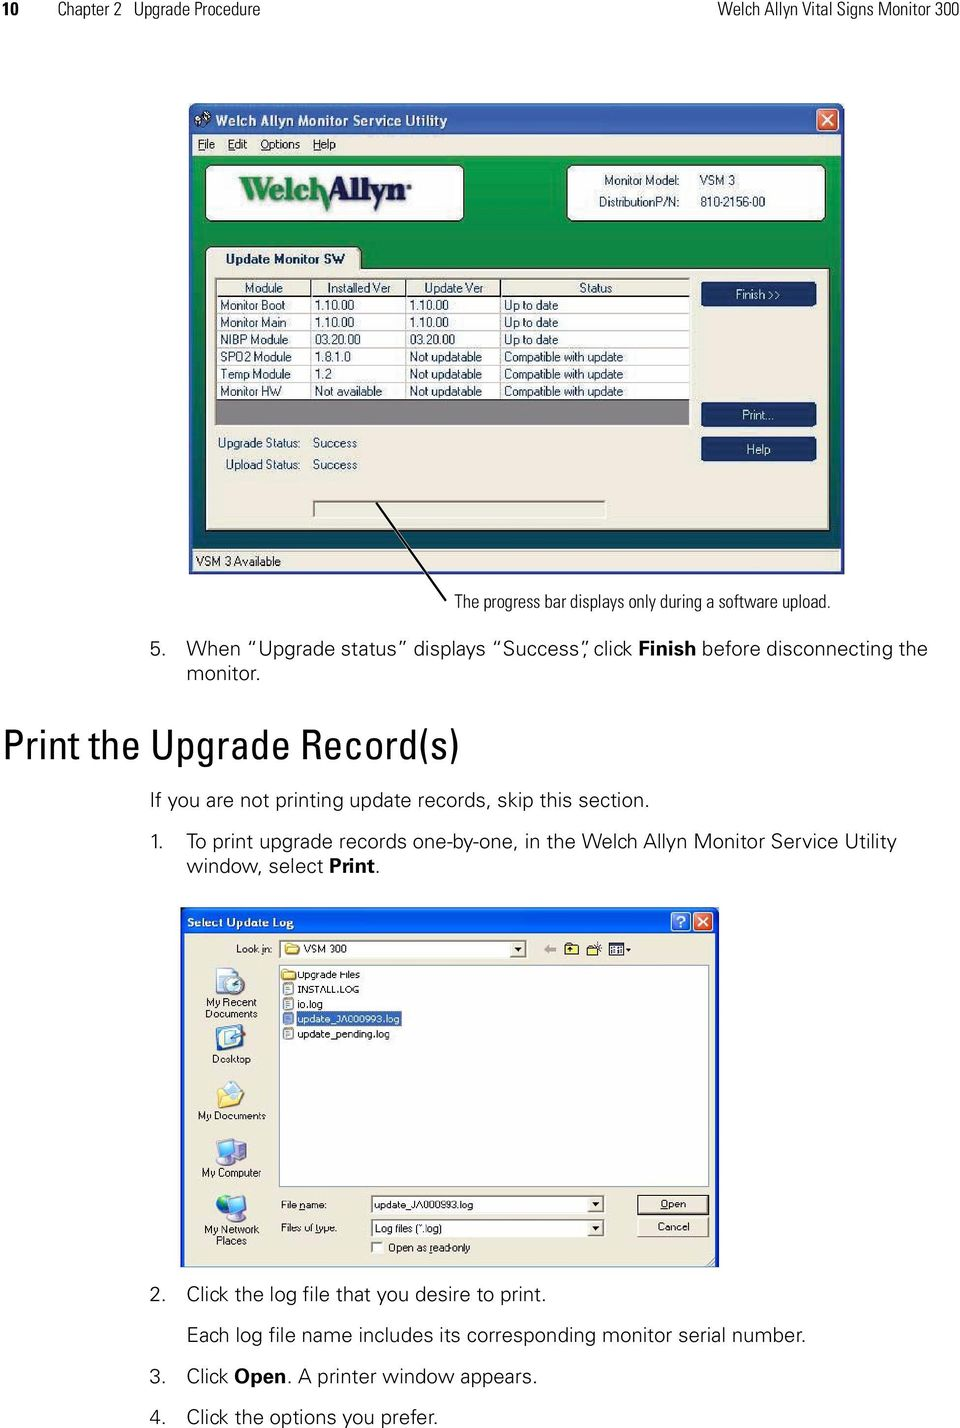 Print the Upgrade Record(s) The progress bar displays only during a software upload. If you are not printing update records, skip this section. 1.